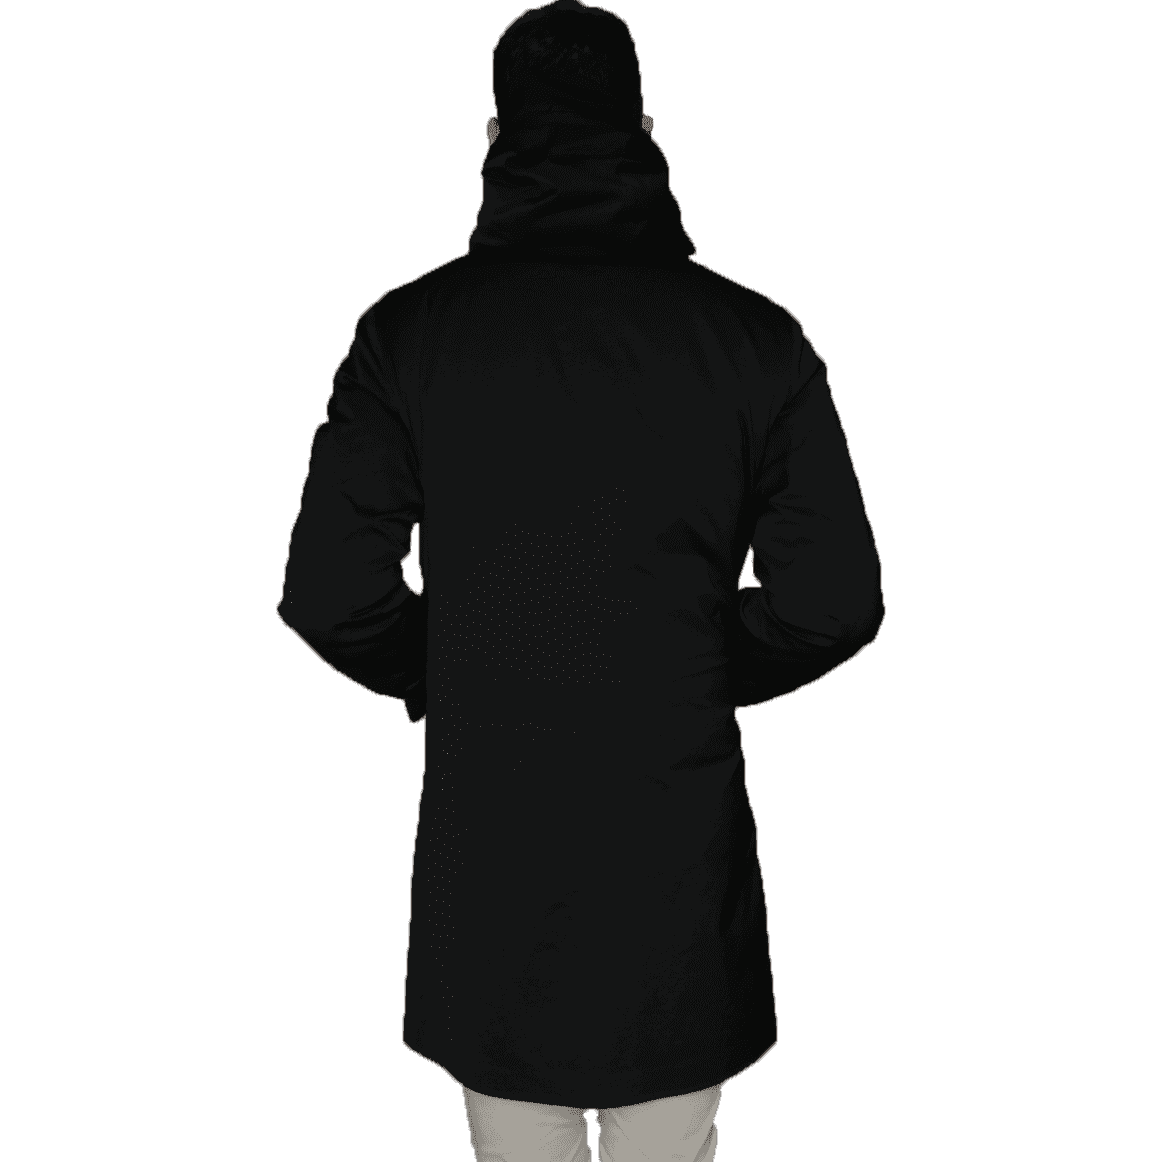 Cabinero Stiles Herrenmode Onlineshop C.P.Company P-Lastic Parka #03CMOW85A-005079A AW17-18 2